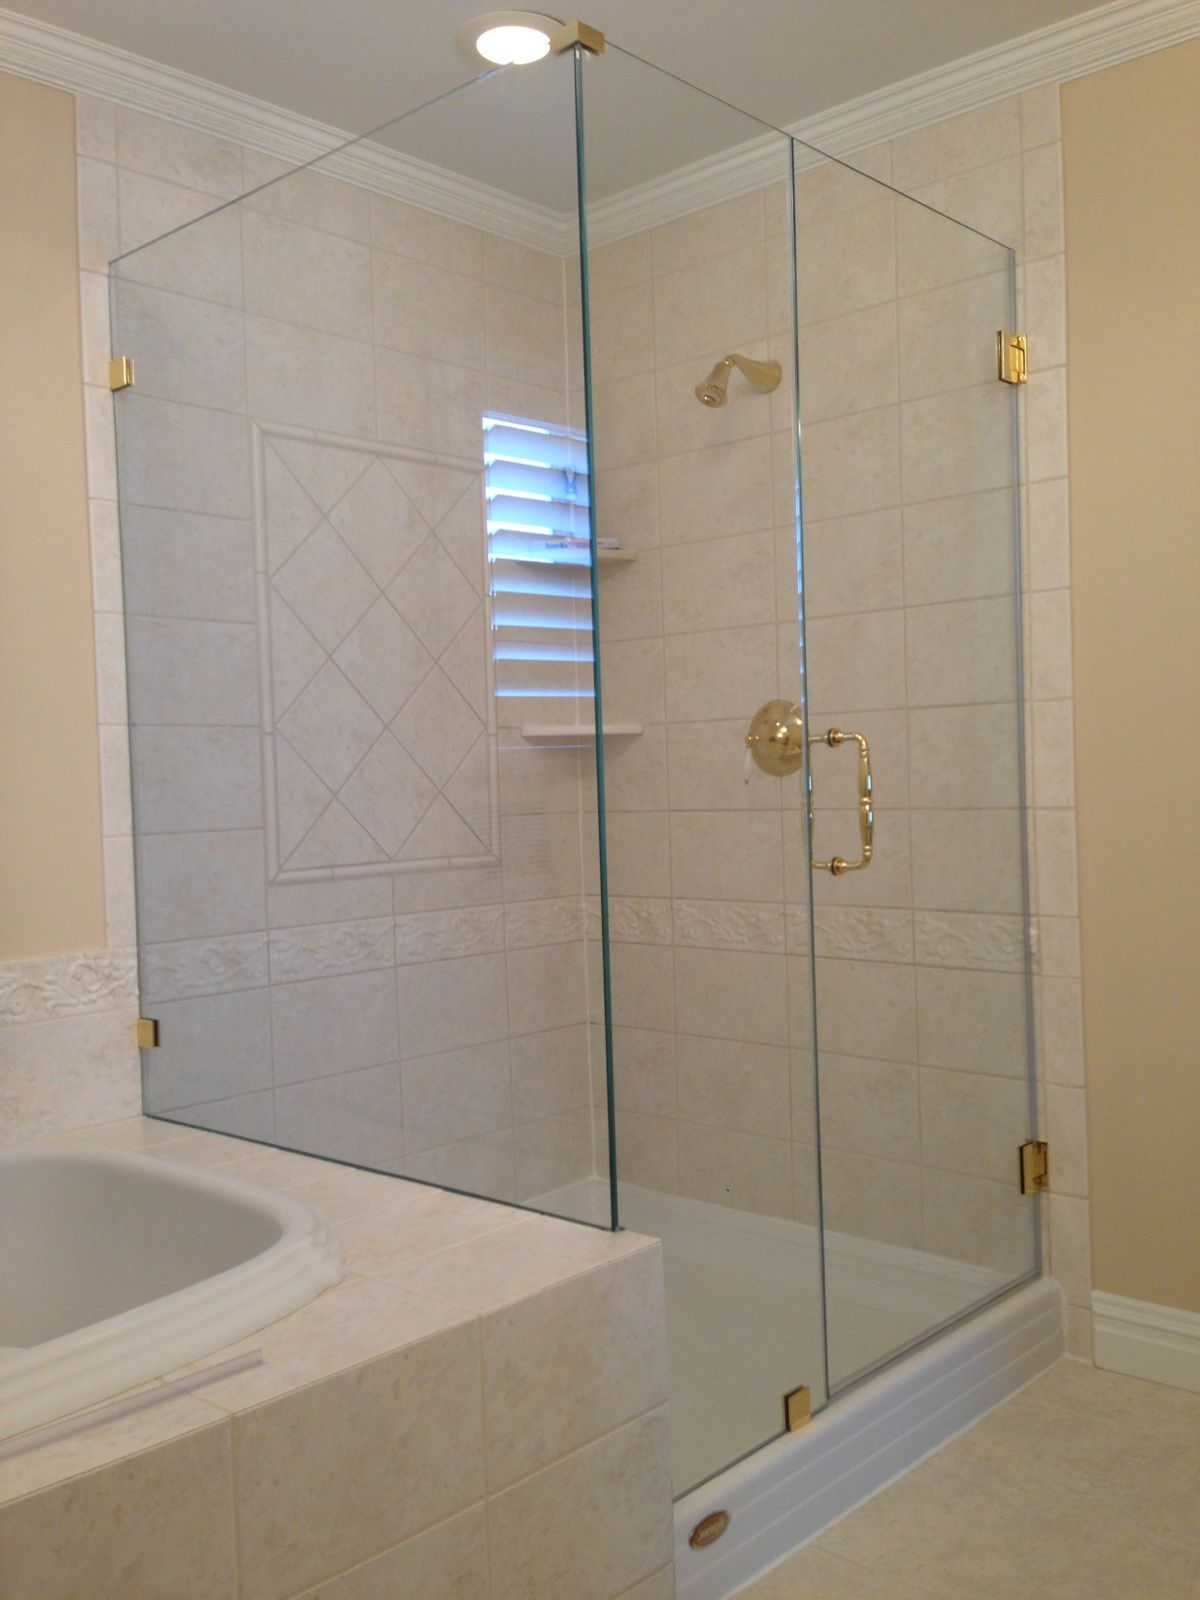 Showerman Frameless Shower Enclosure Layout Is A Classic